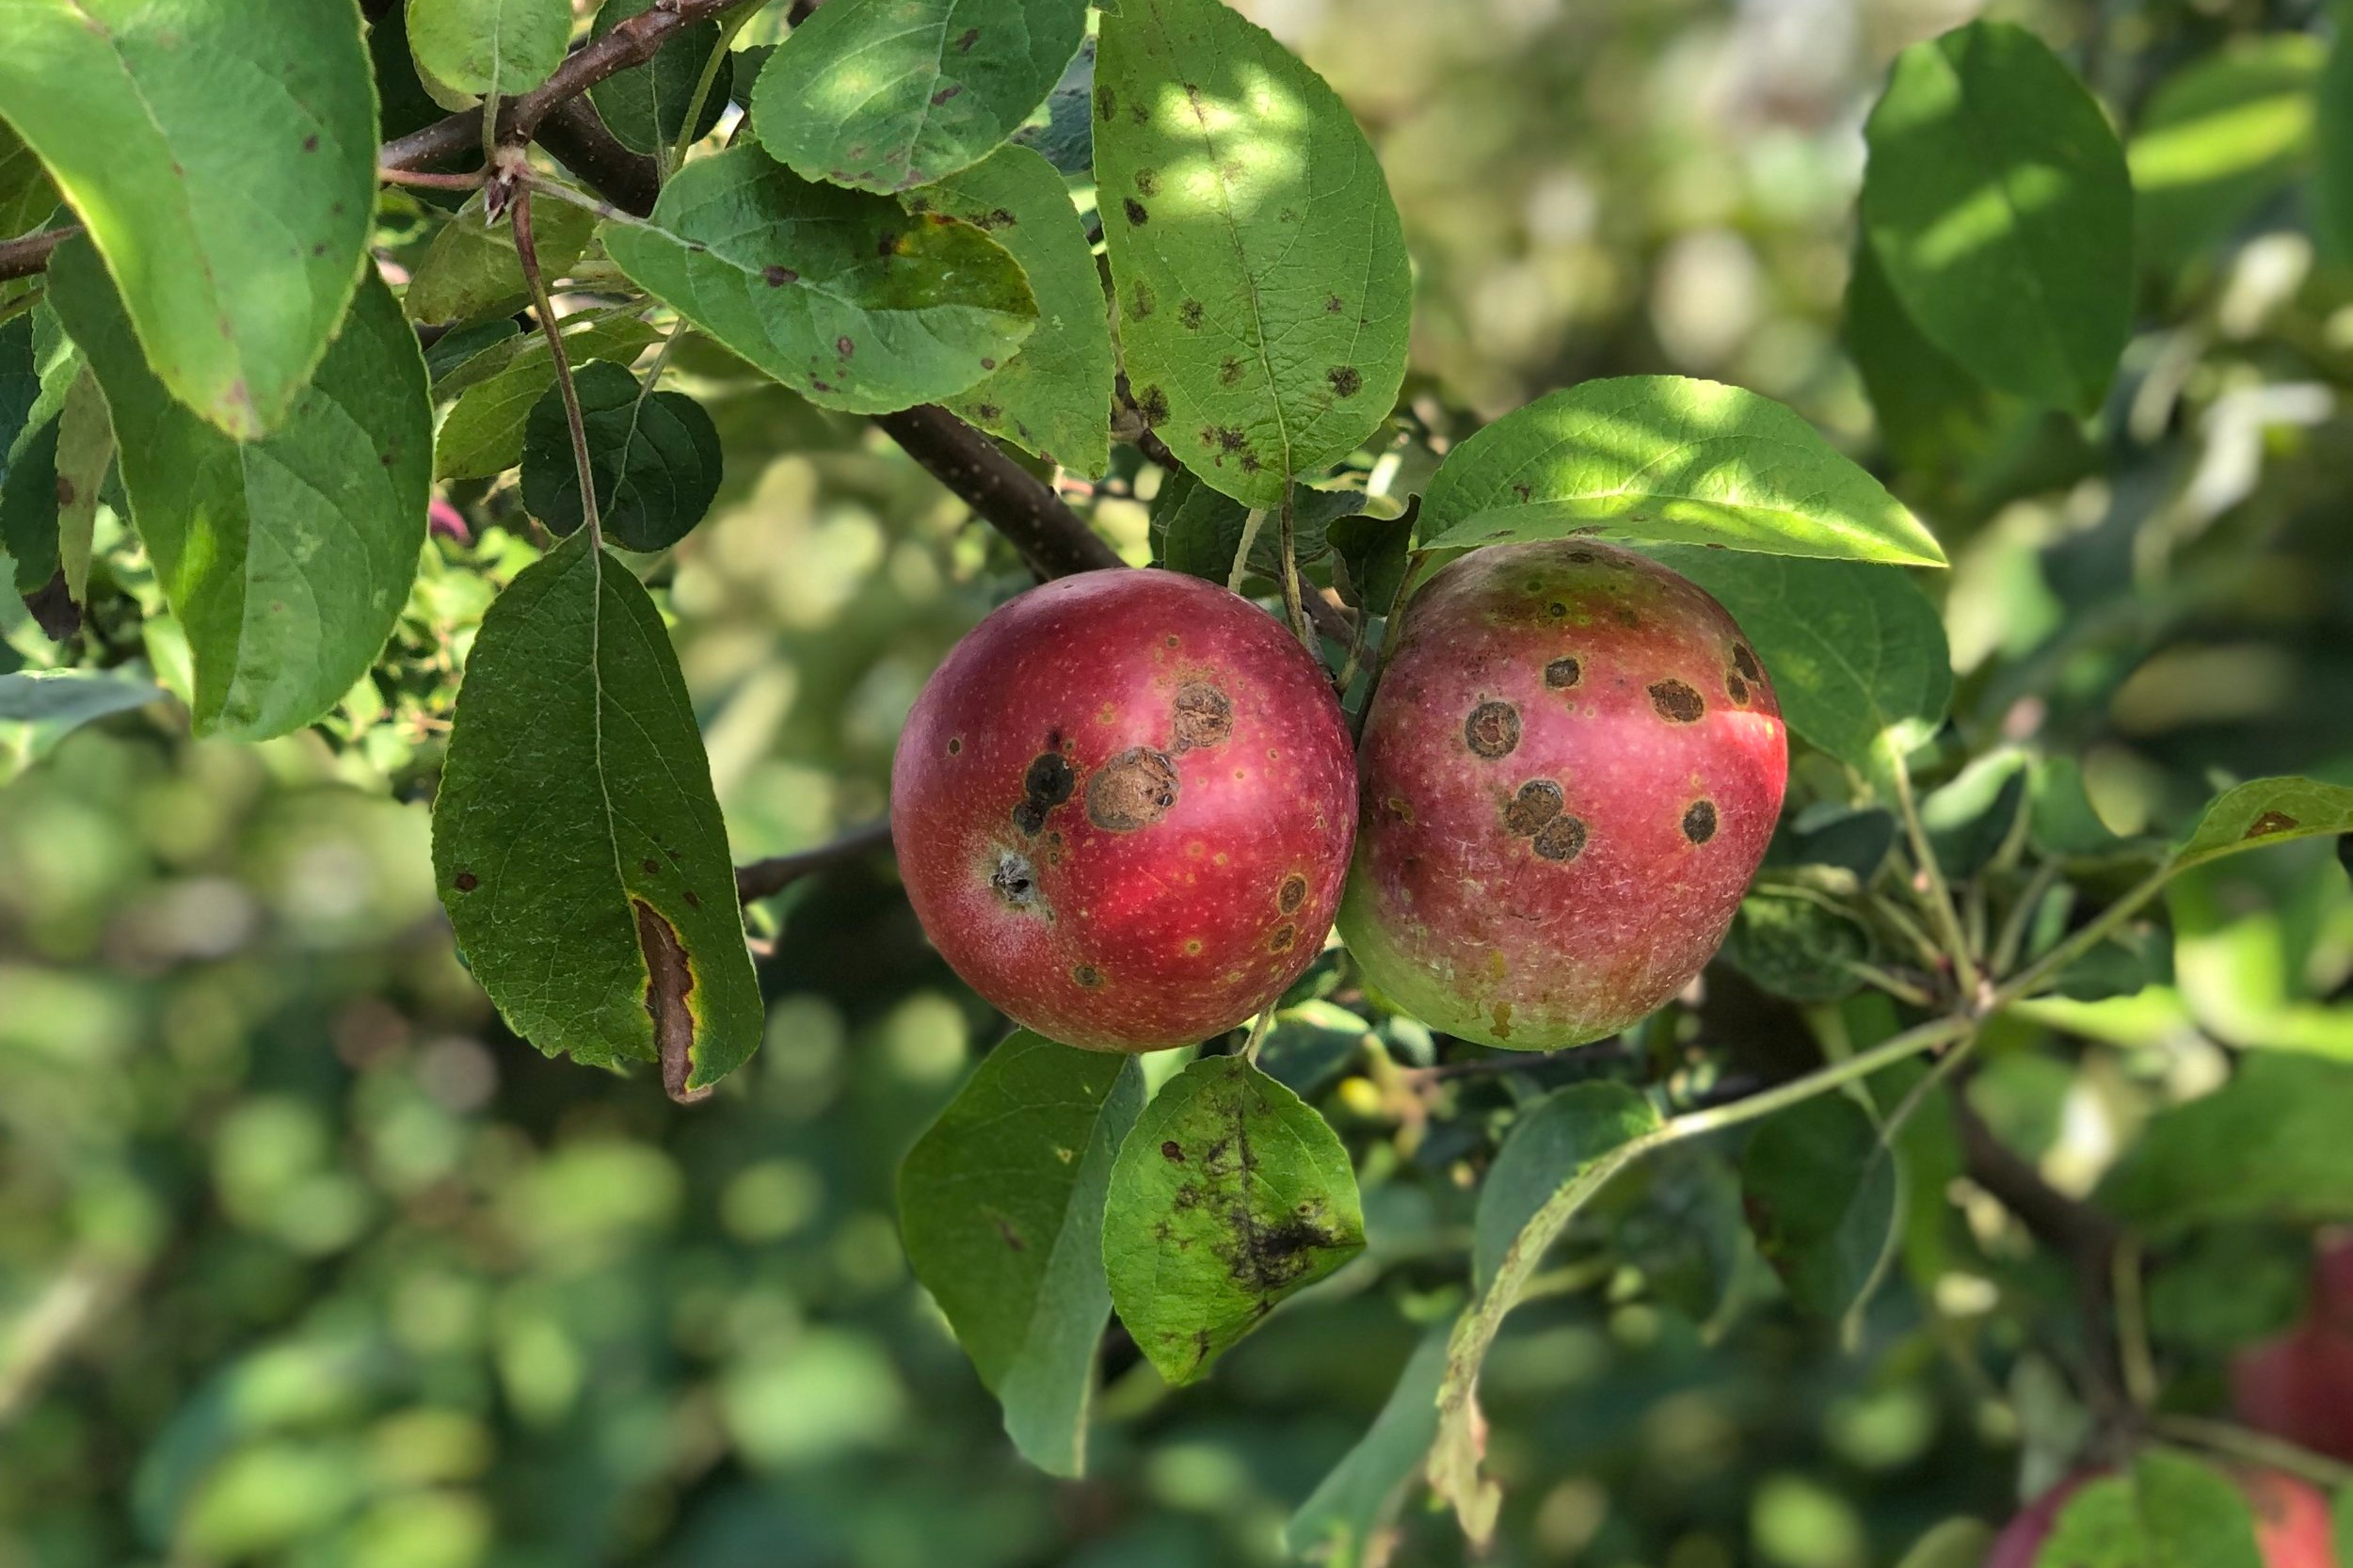 Apple Scab  is another fungal disease that is noticeable first in the leaves and later on the apples. Minor scab has no effect on the interior of the apple and can be eaten as normal. If you'd prefer, you can also peel or cut the scab away.